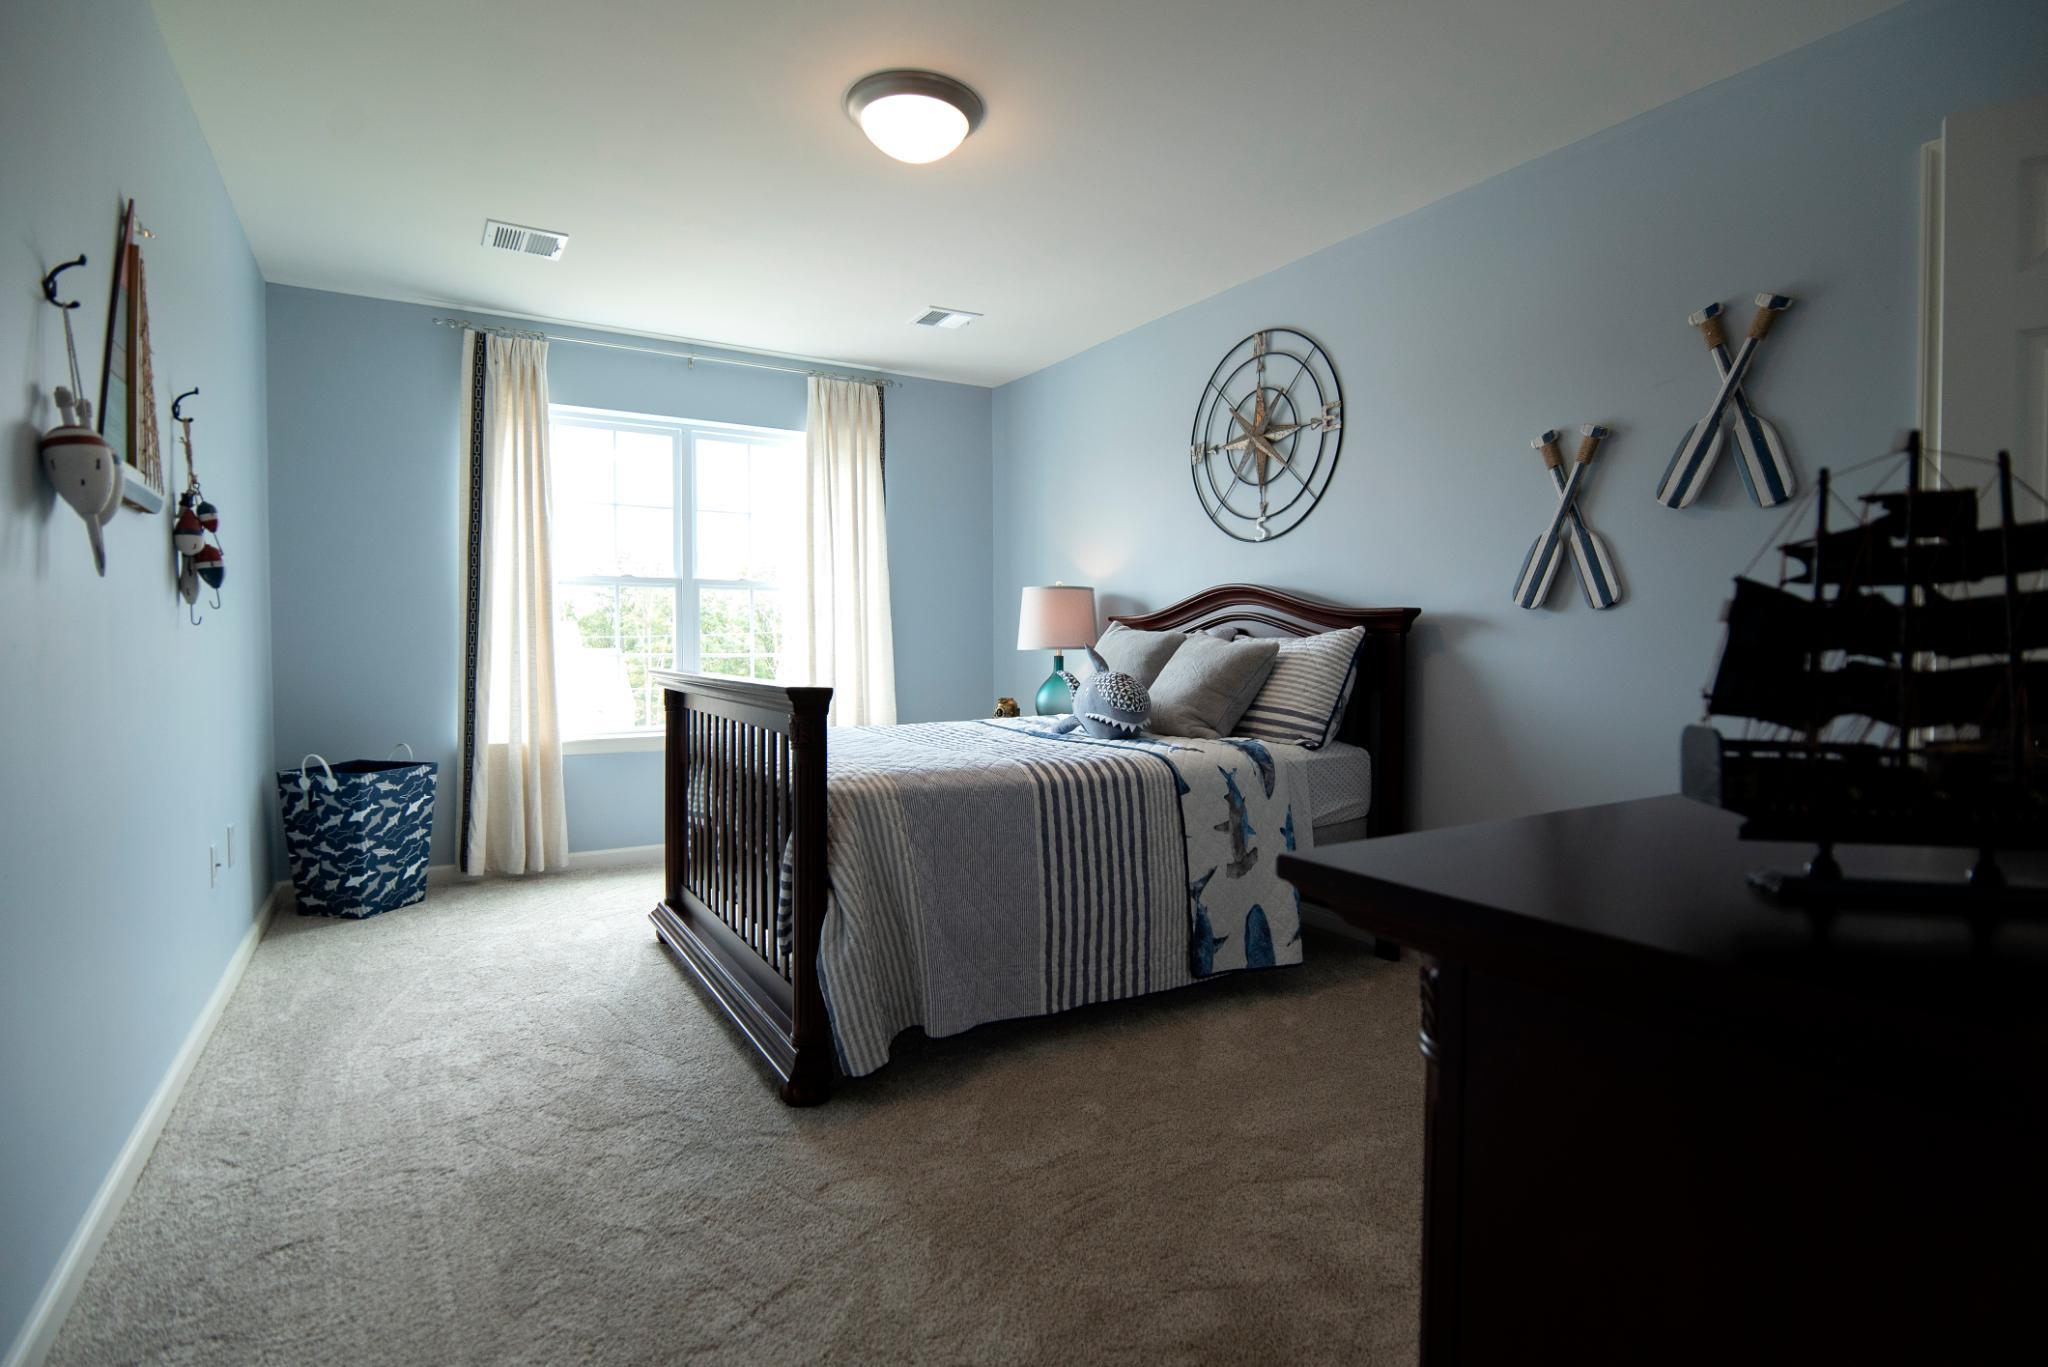 Bedroom featured in the Kingston Country By Tuskes Homes in Scranton-Wilkes-Barre, PA